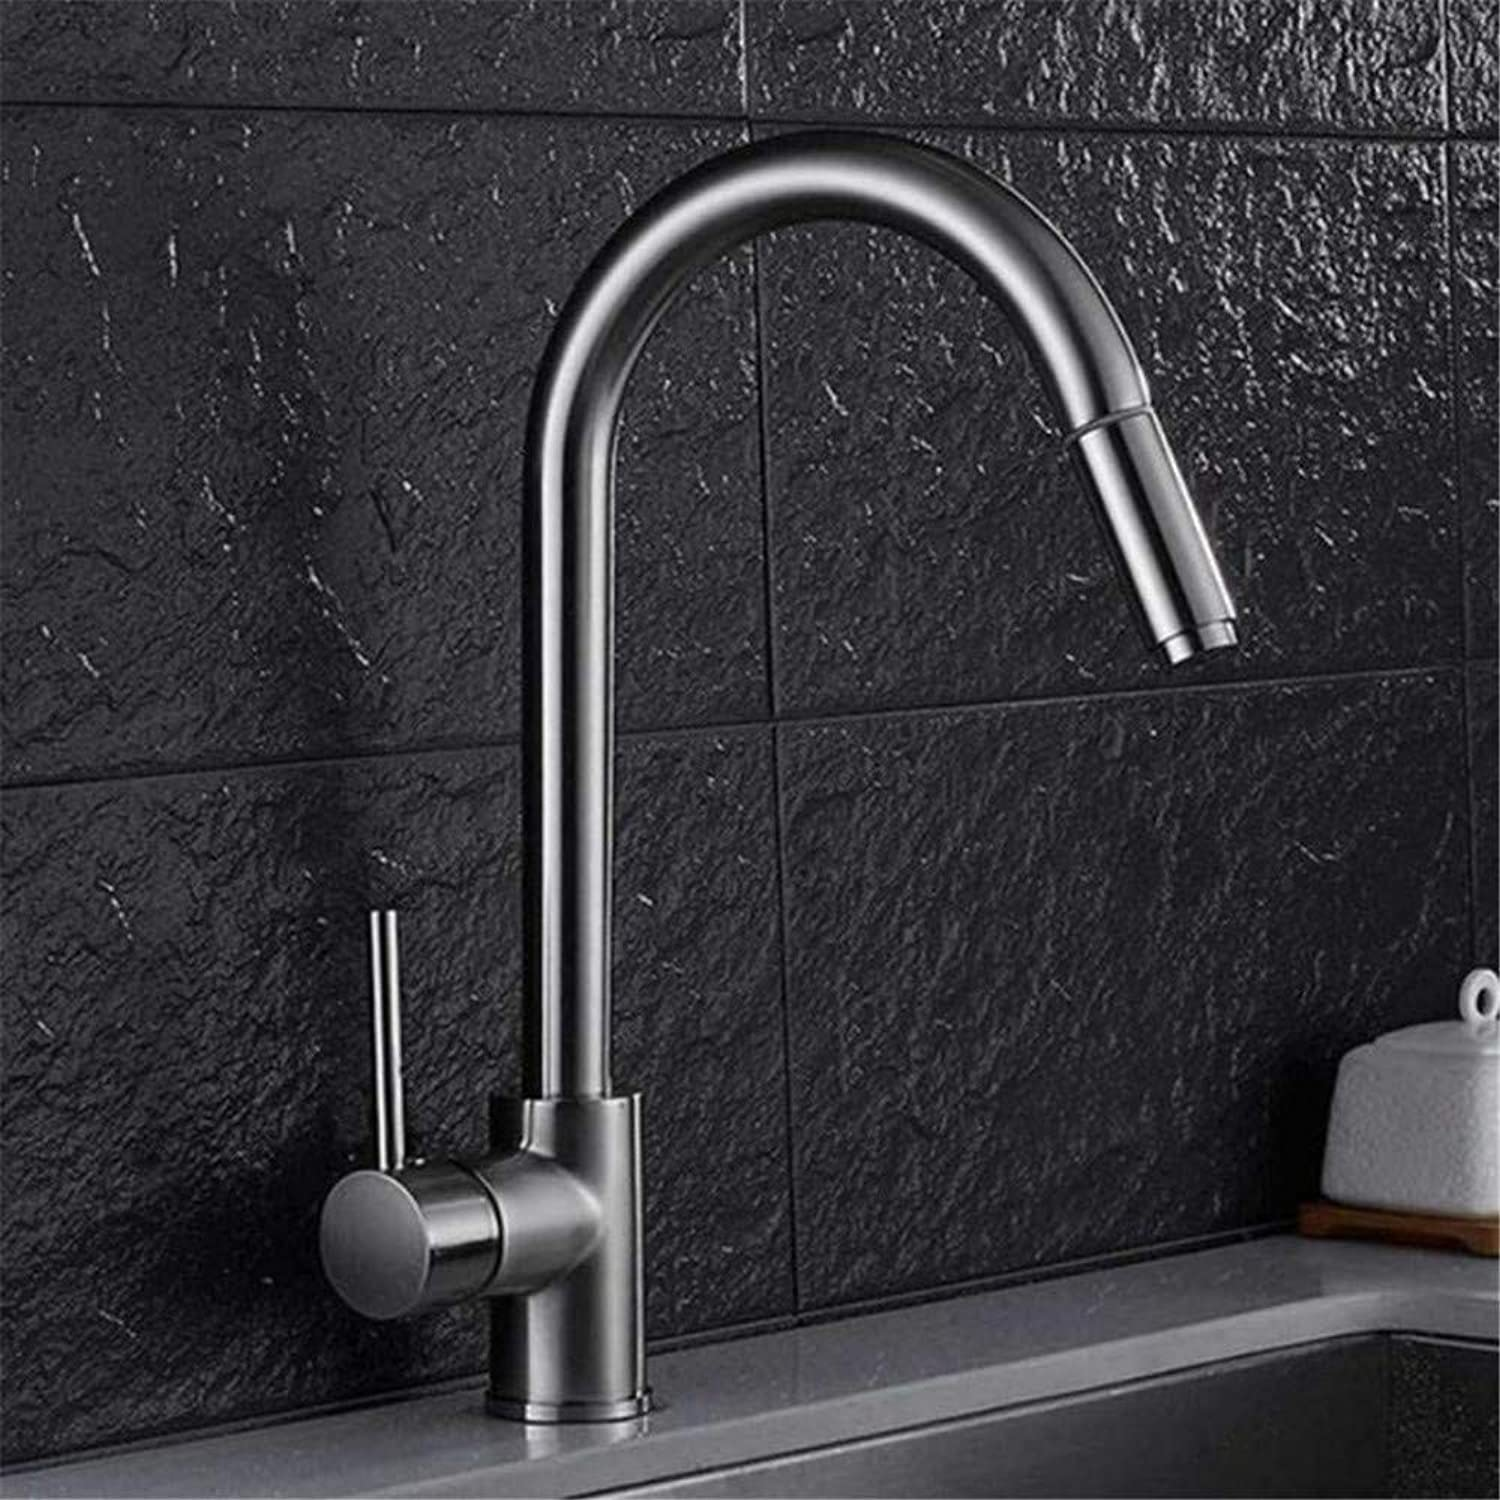 Brass Chrome Hot and Cold Water Faucet Brass Chrome Nickel Black Sink Mixer Tap Pull Out Shower Head Single Handle Swivel Deck Mounted Kitchen Water Tap